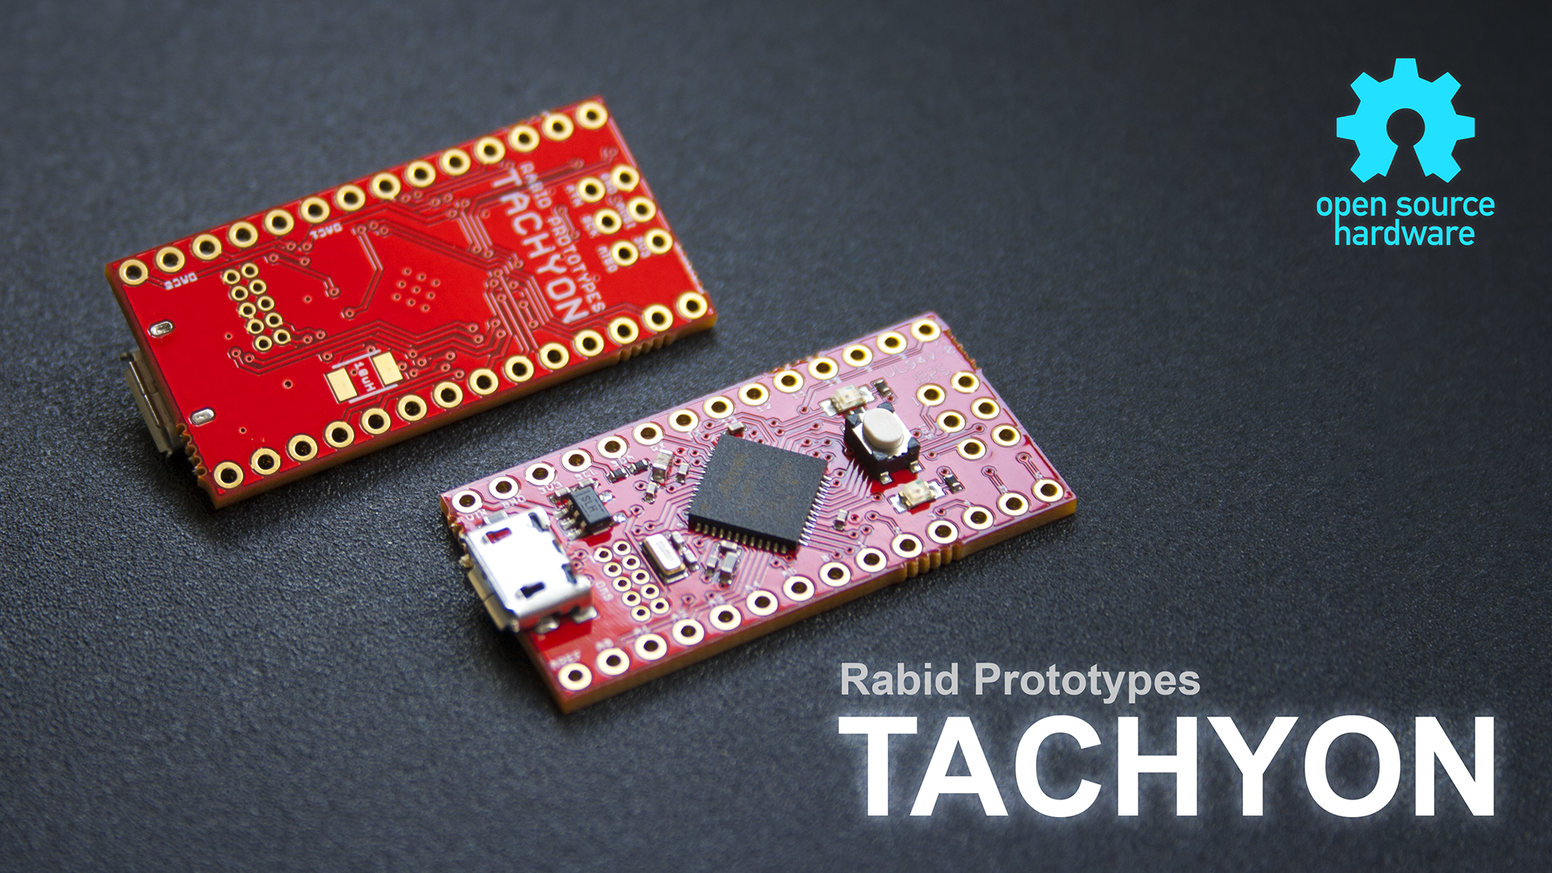 Tachyon The Lightning Fast 120mhz Arduino Compatible By Rabid How To Make Your Own Board Use For Projects Features A 32 Bit Arm Cortex M4f Zero Samd51 Microcontroller